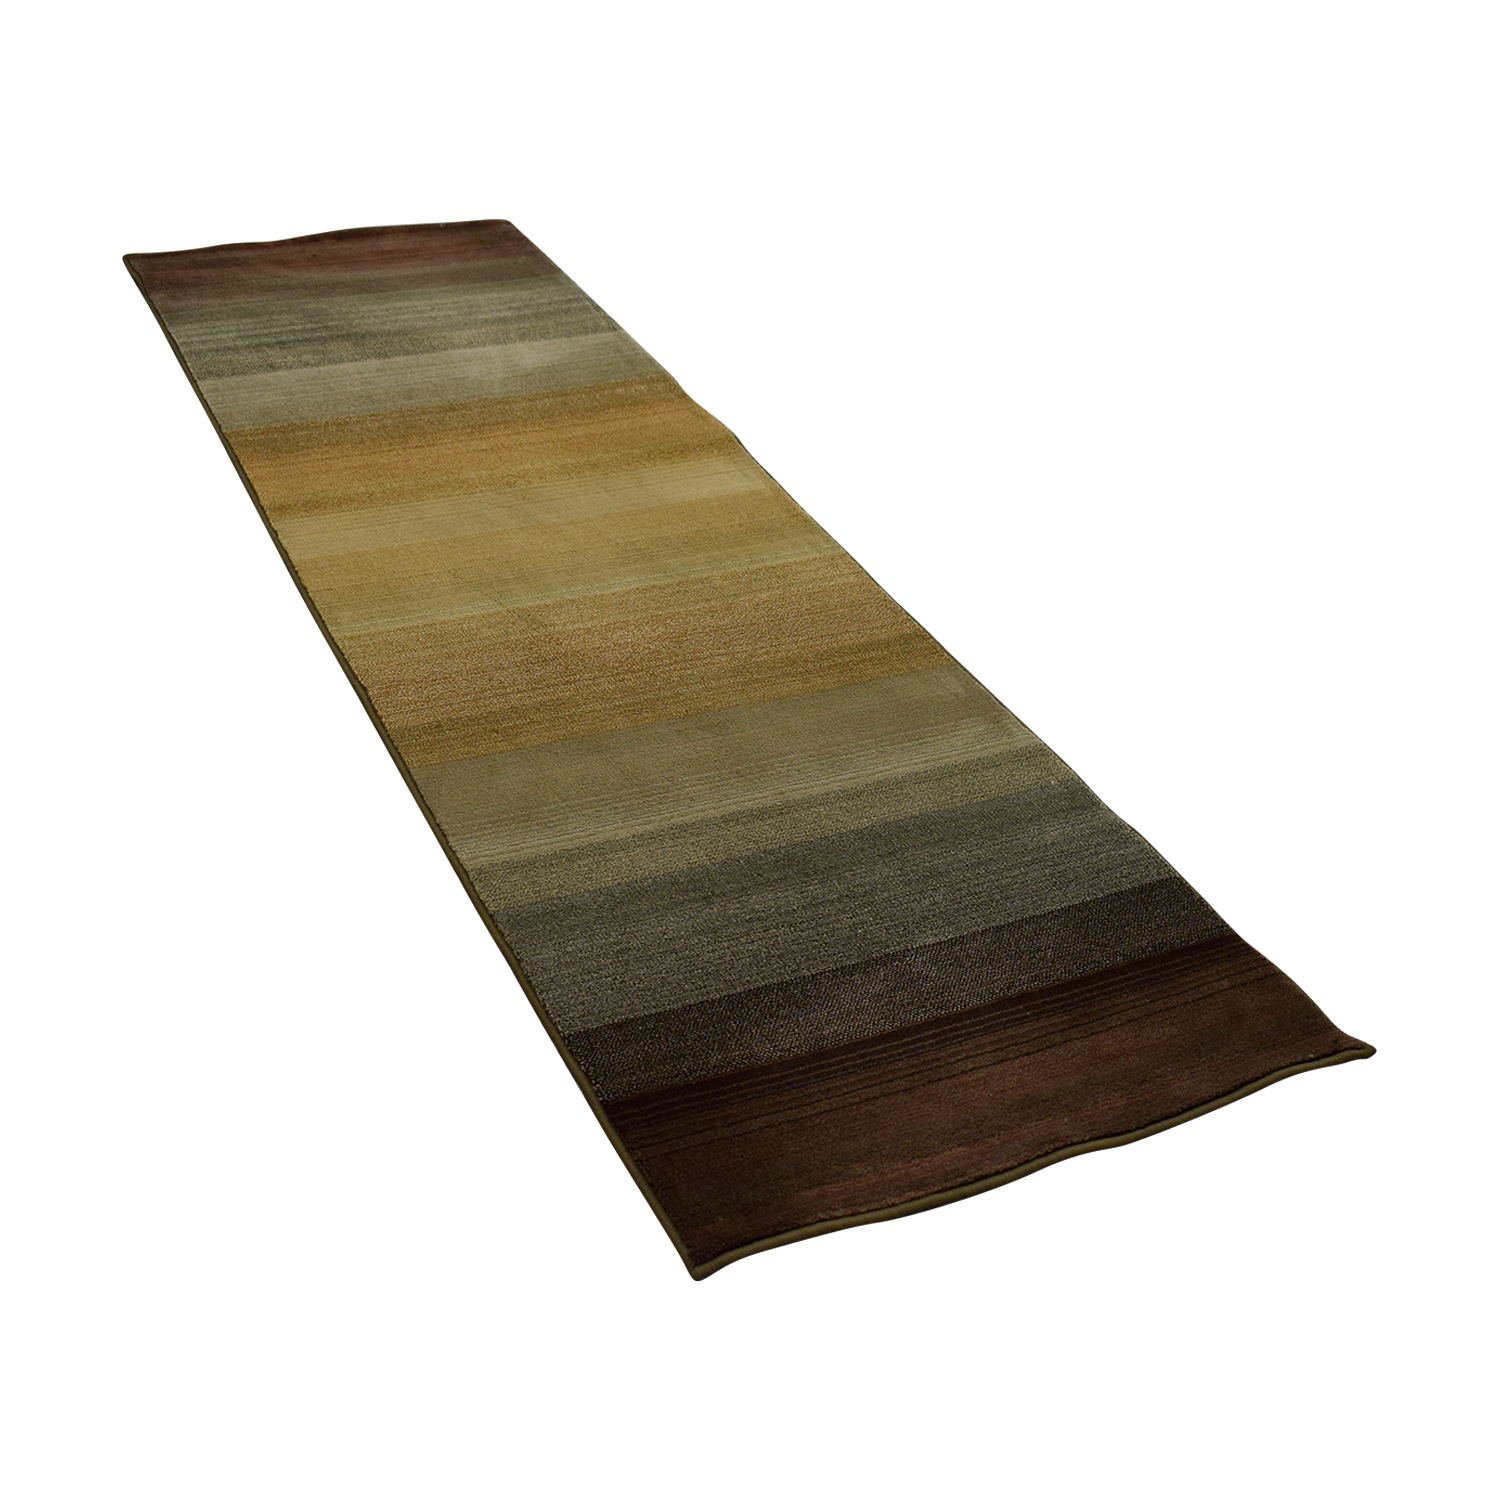 Macy's Macy's Multi-Colored Runner Rug for sale